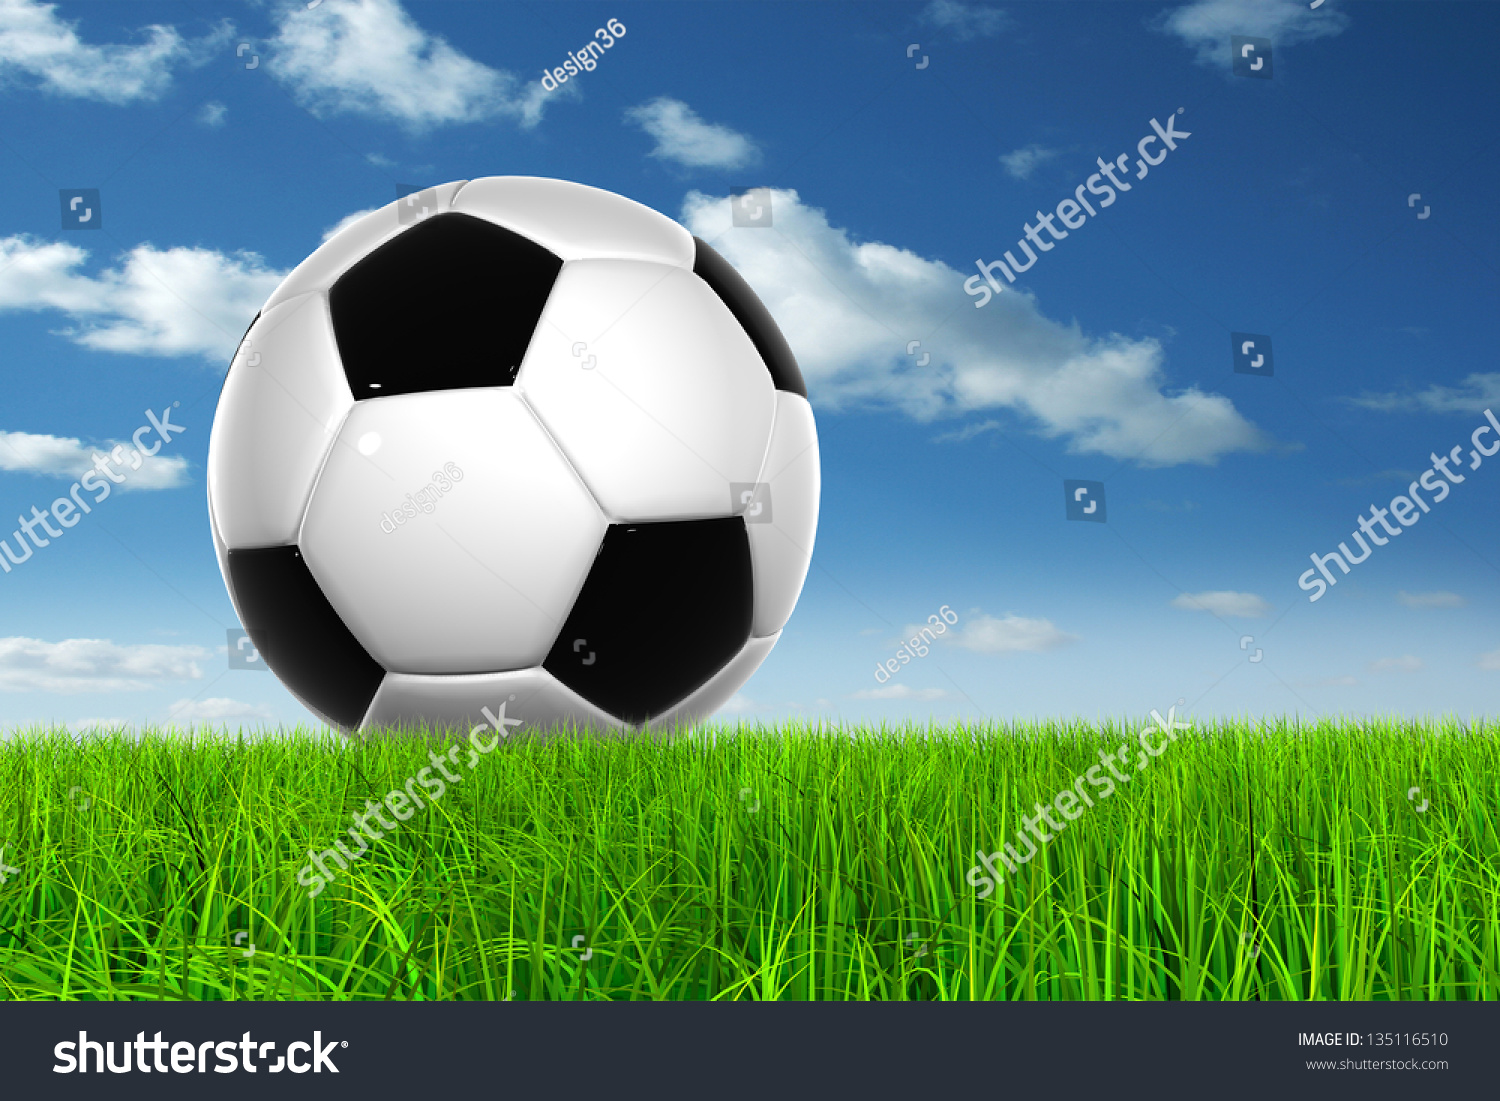 Soccer Football On Green Field With Blue Sky Background: Concept Conceptual 3d Soccer Ball Fresh Stock Illustration